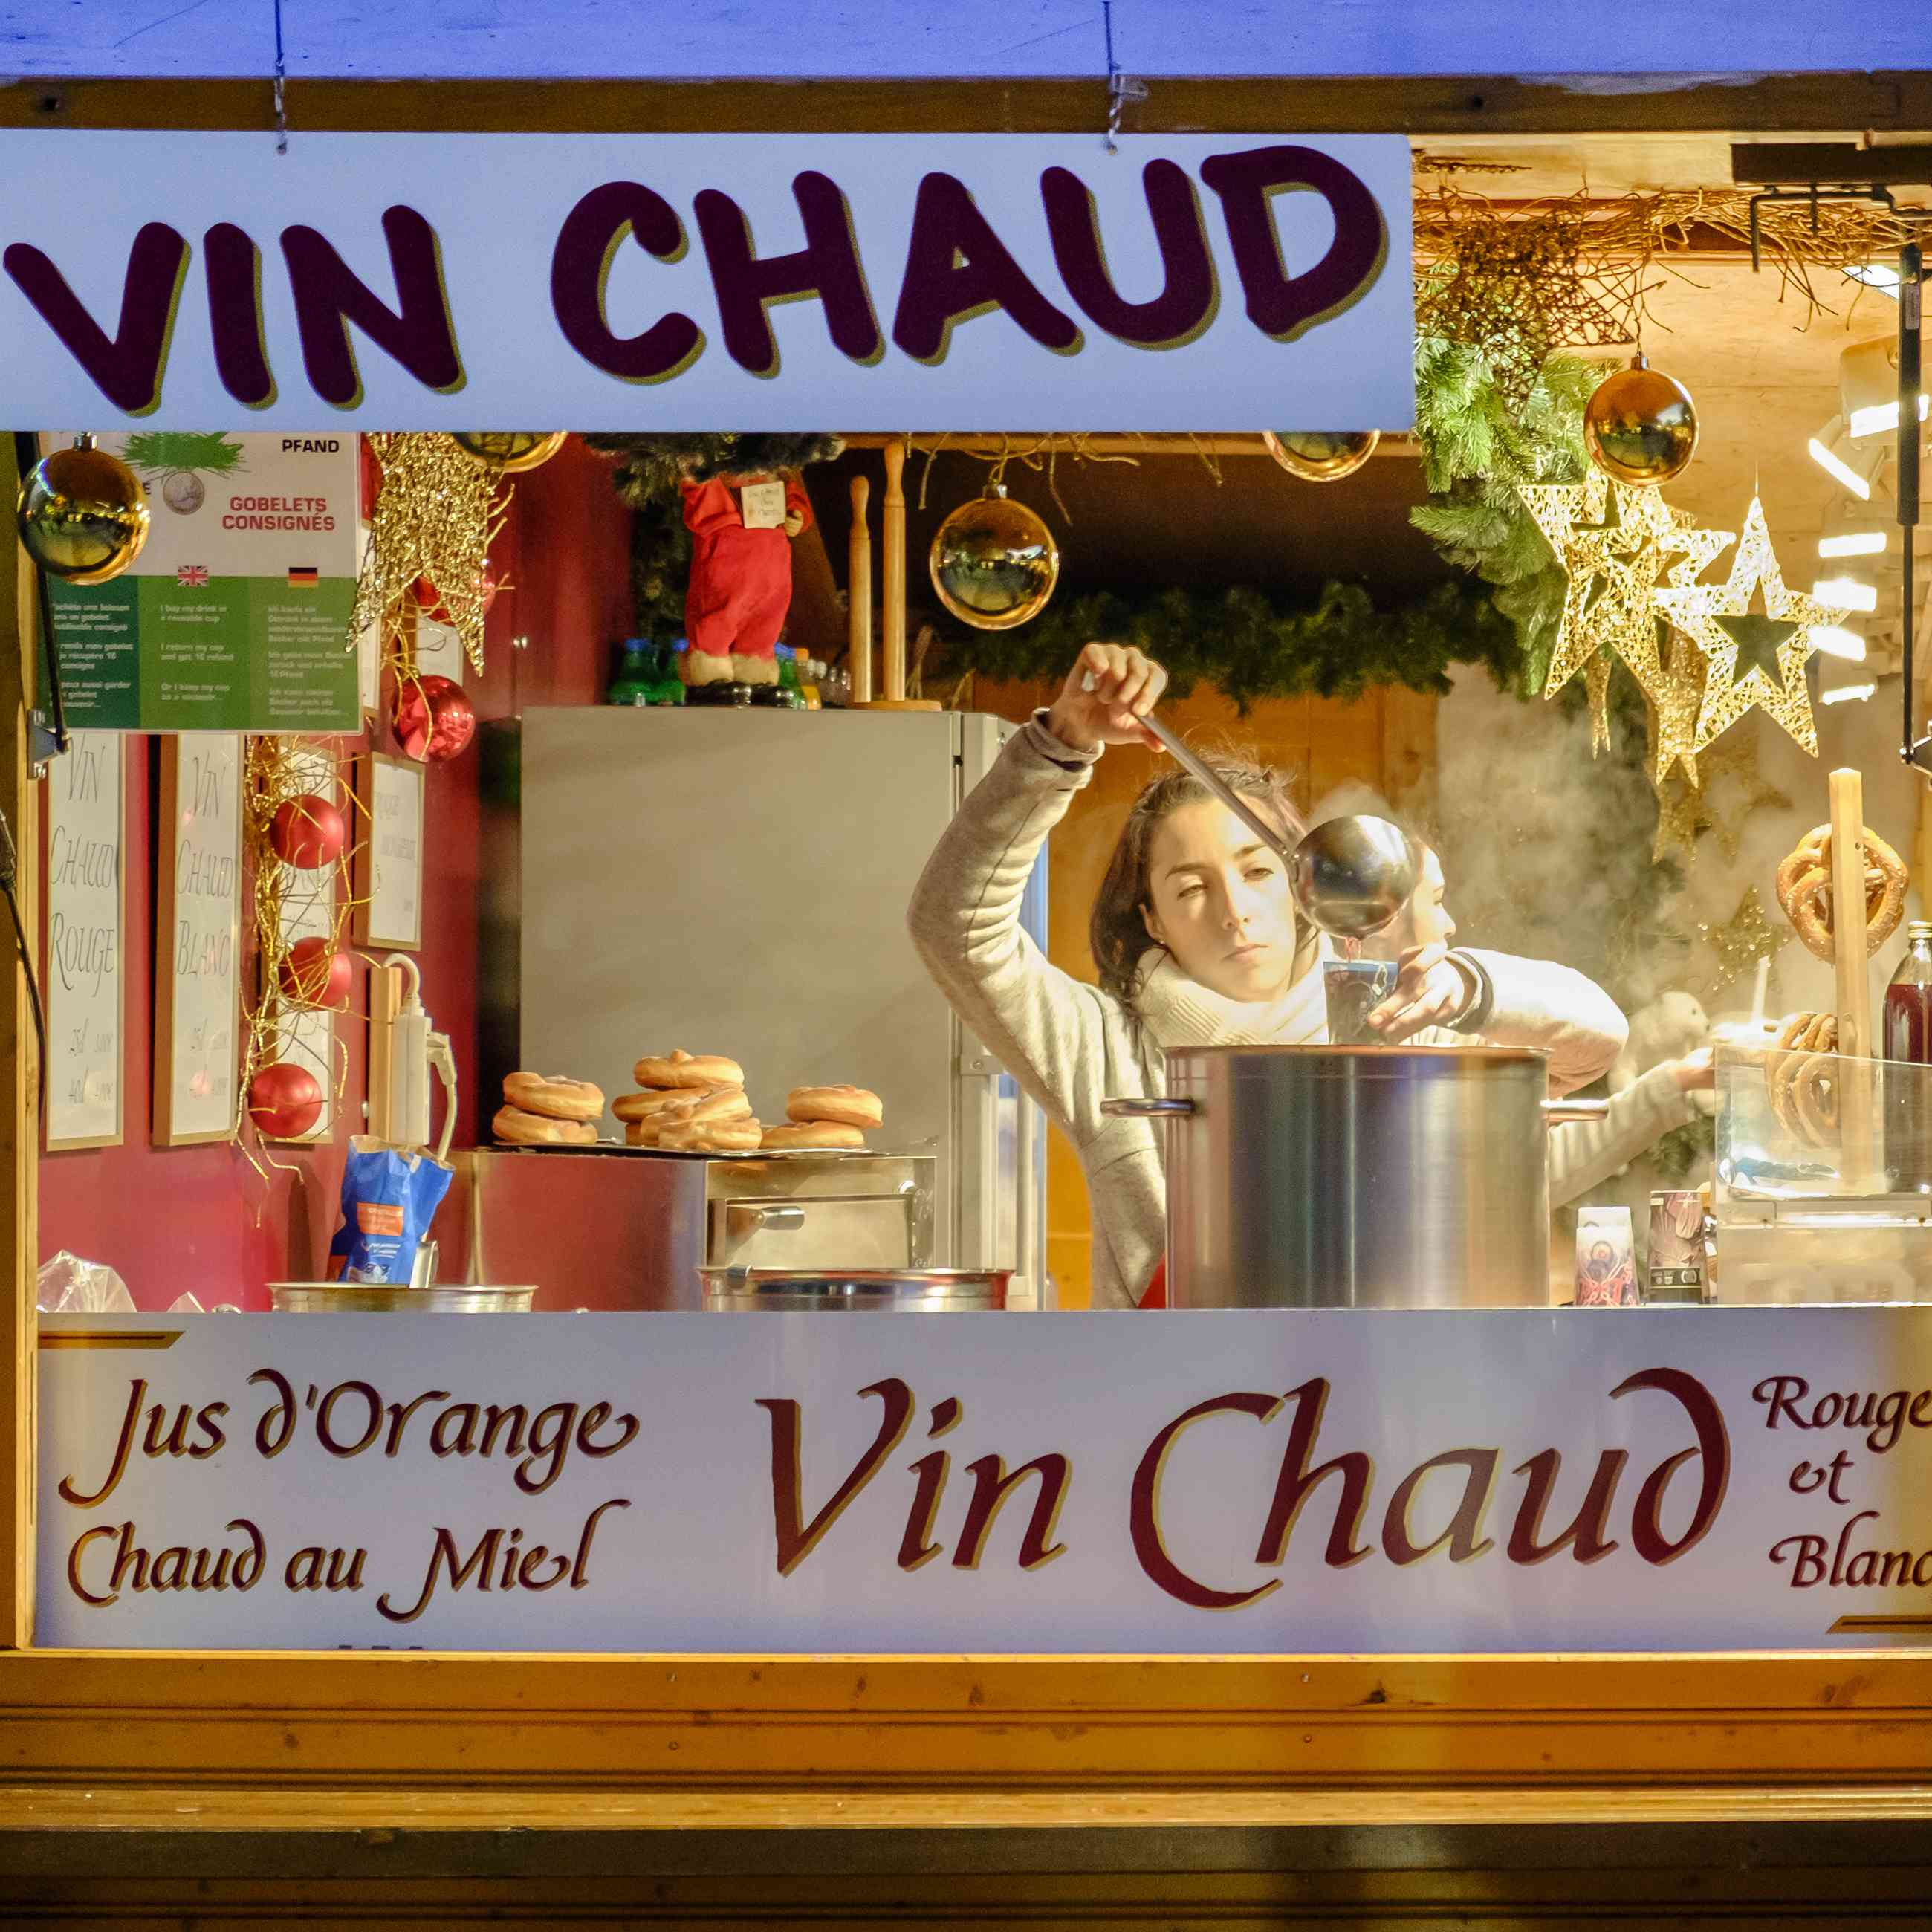 Vin chaud (mulled wine) served at a Christmas market in Strasbourg